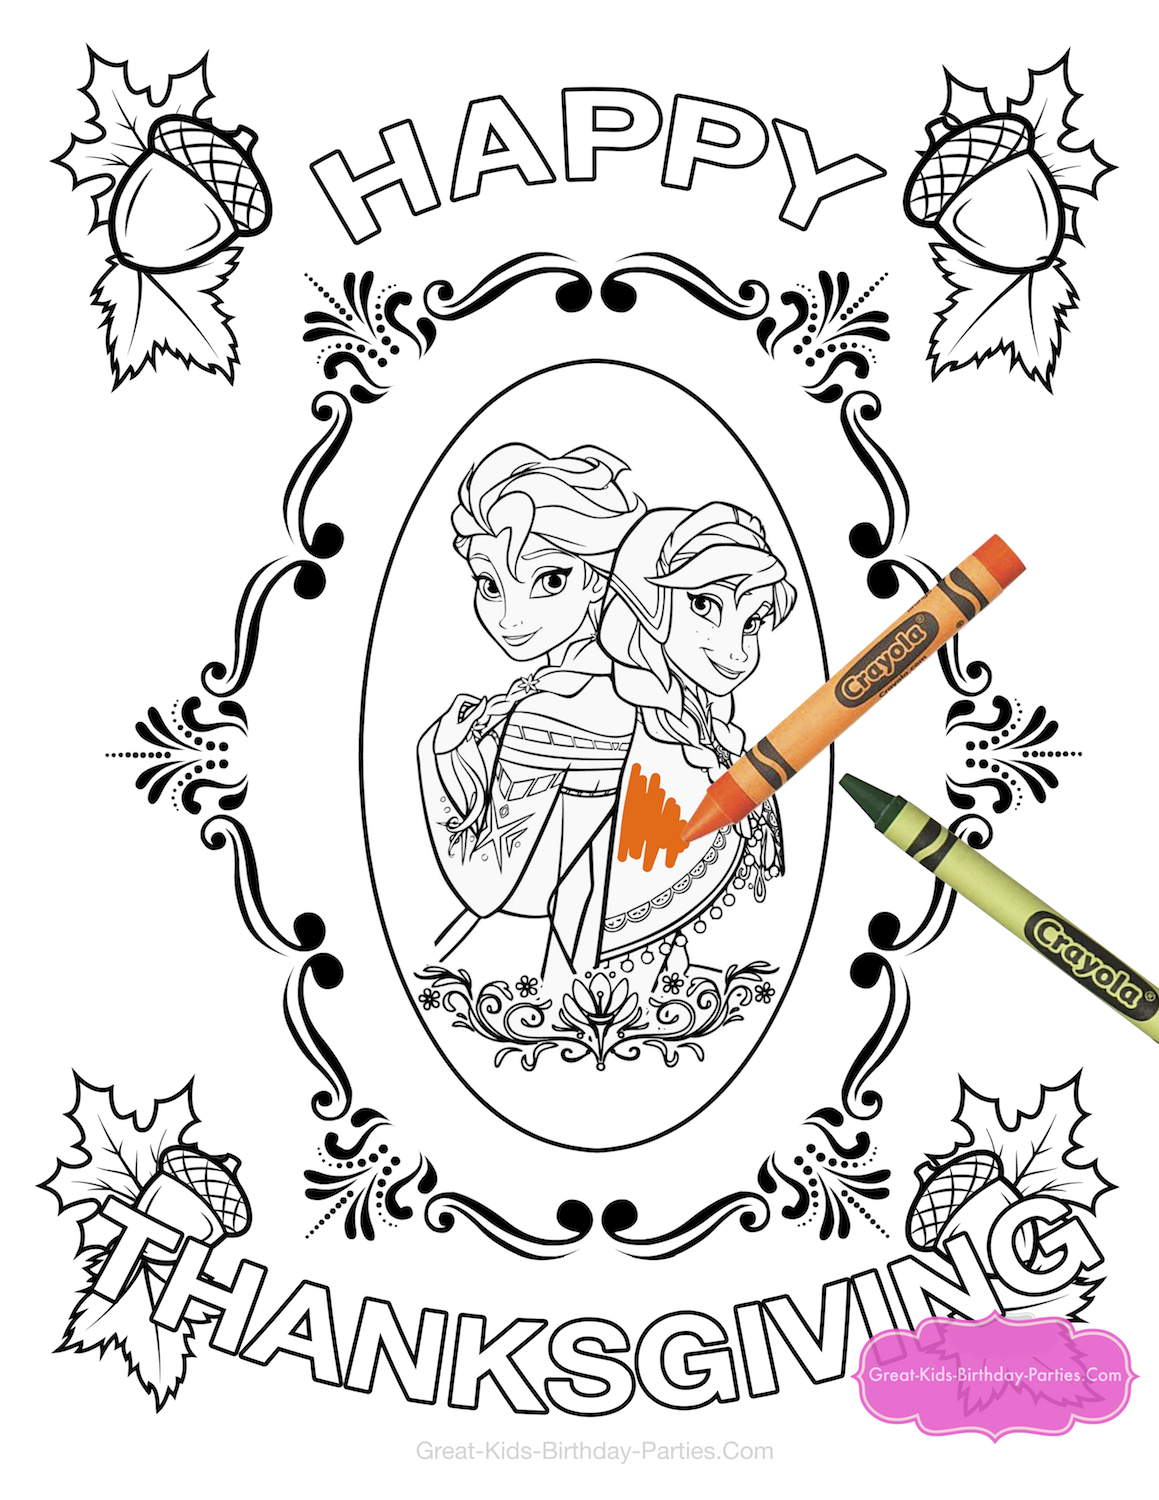 Thanksgiving Coloring Pages Hello Kitty Colouring Pages Hello Kitty Coloring Thanksgiving Coloring Pages